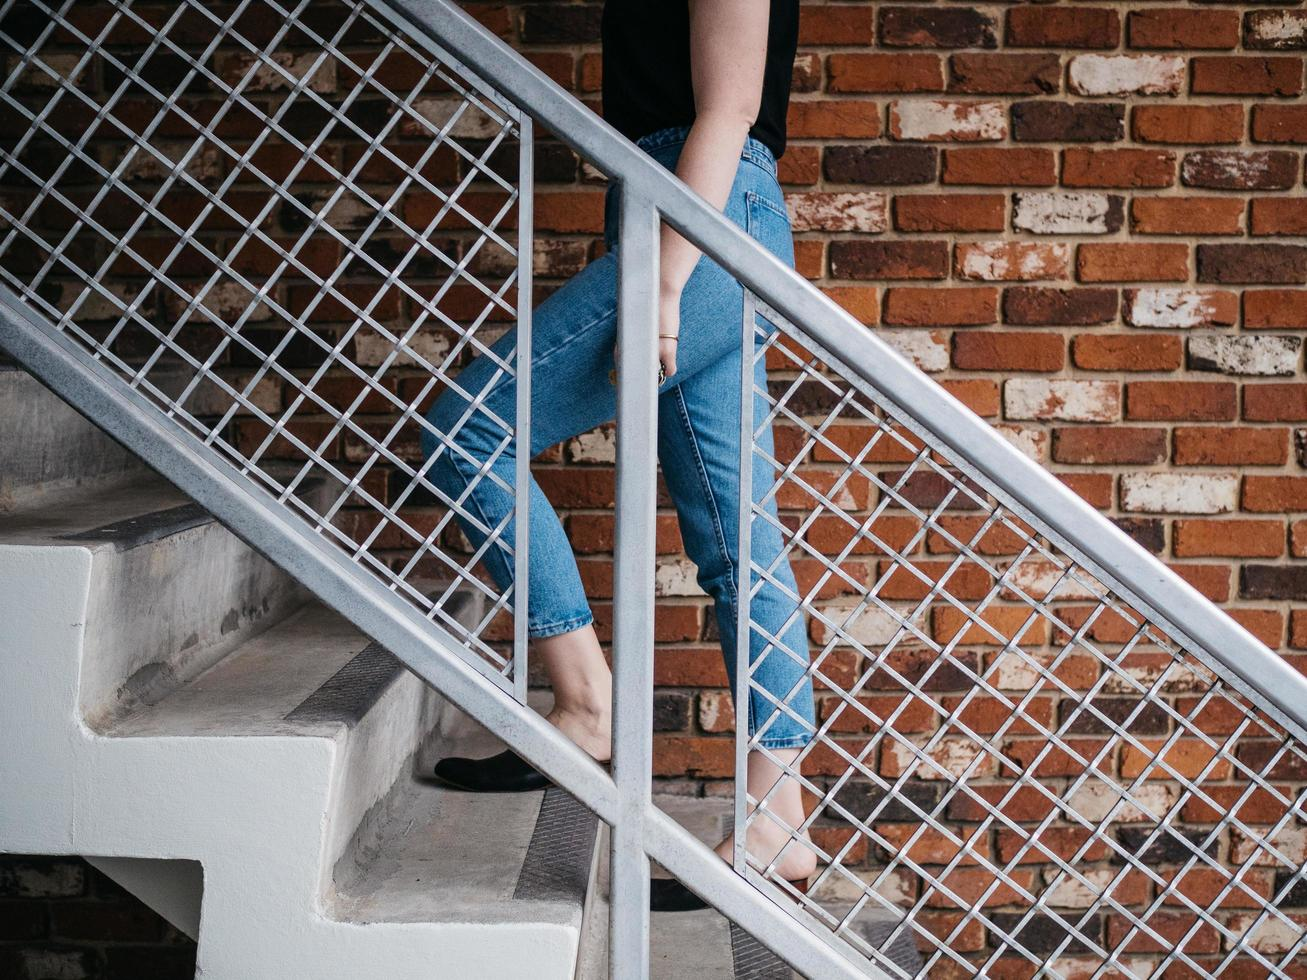 Woman walking on stairs near railling and wall photo